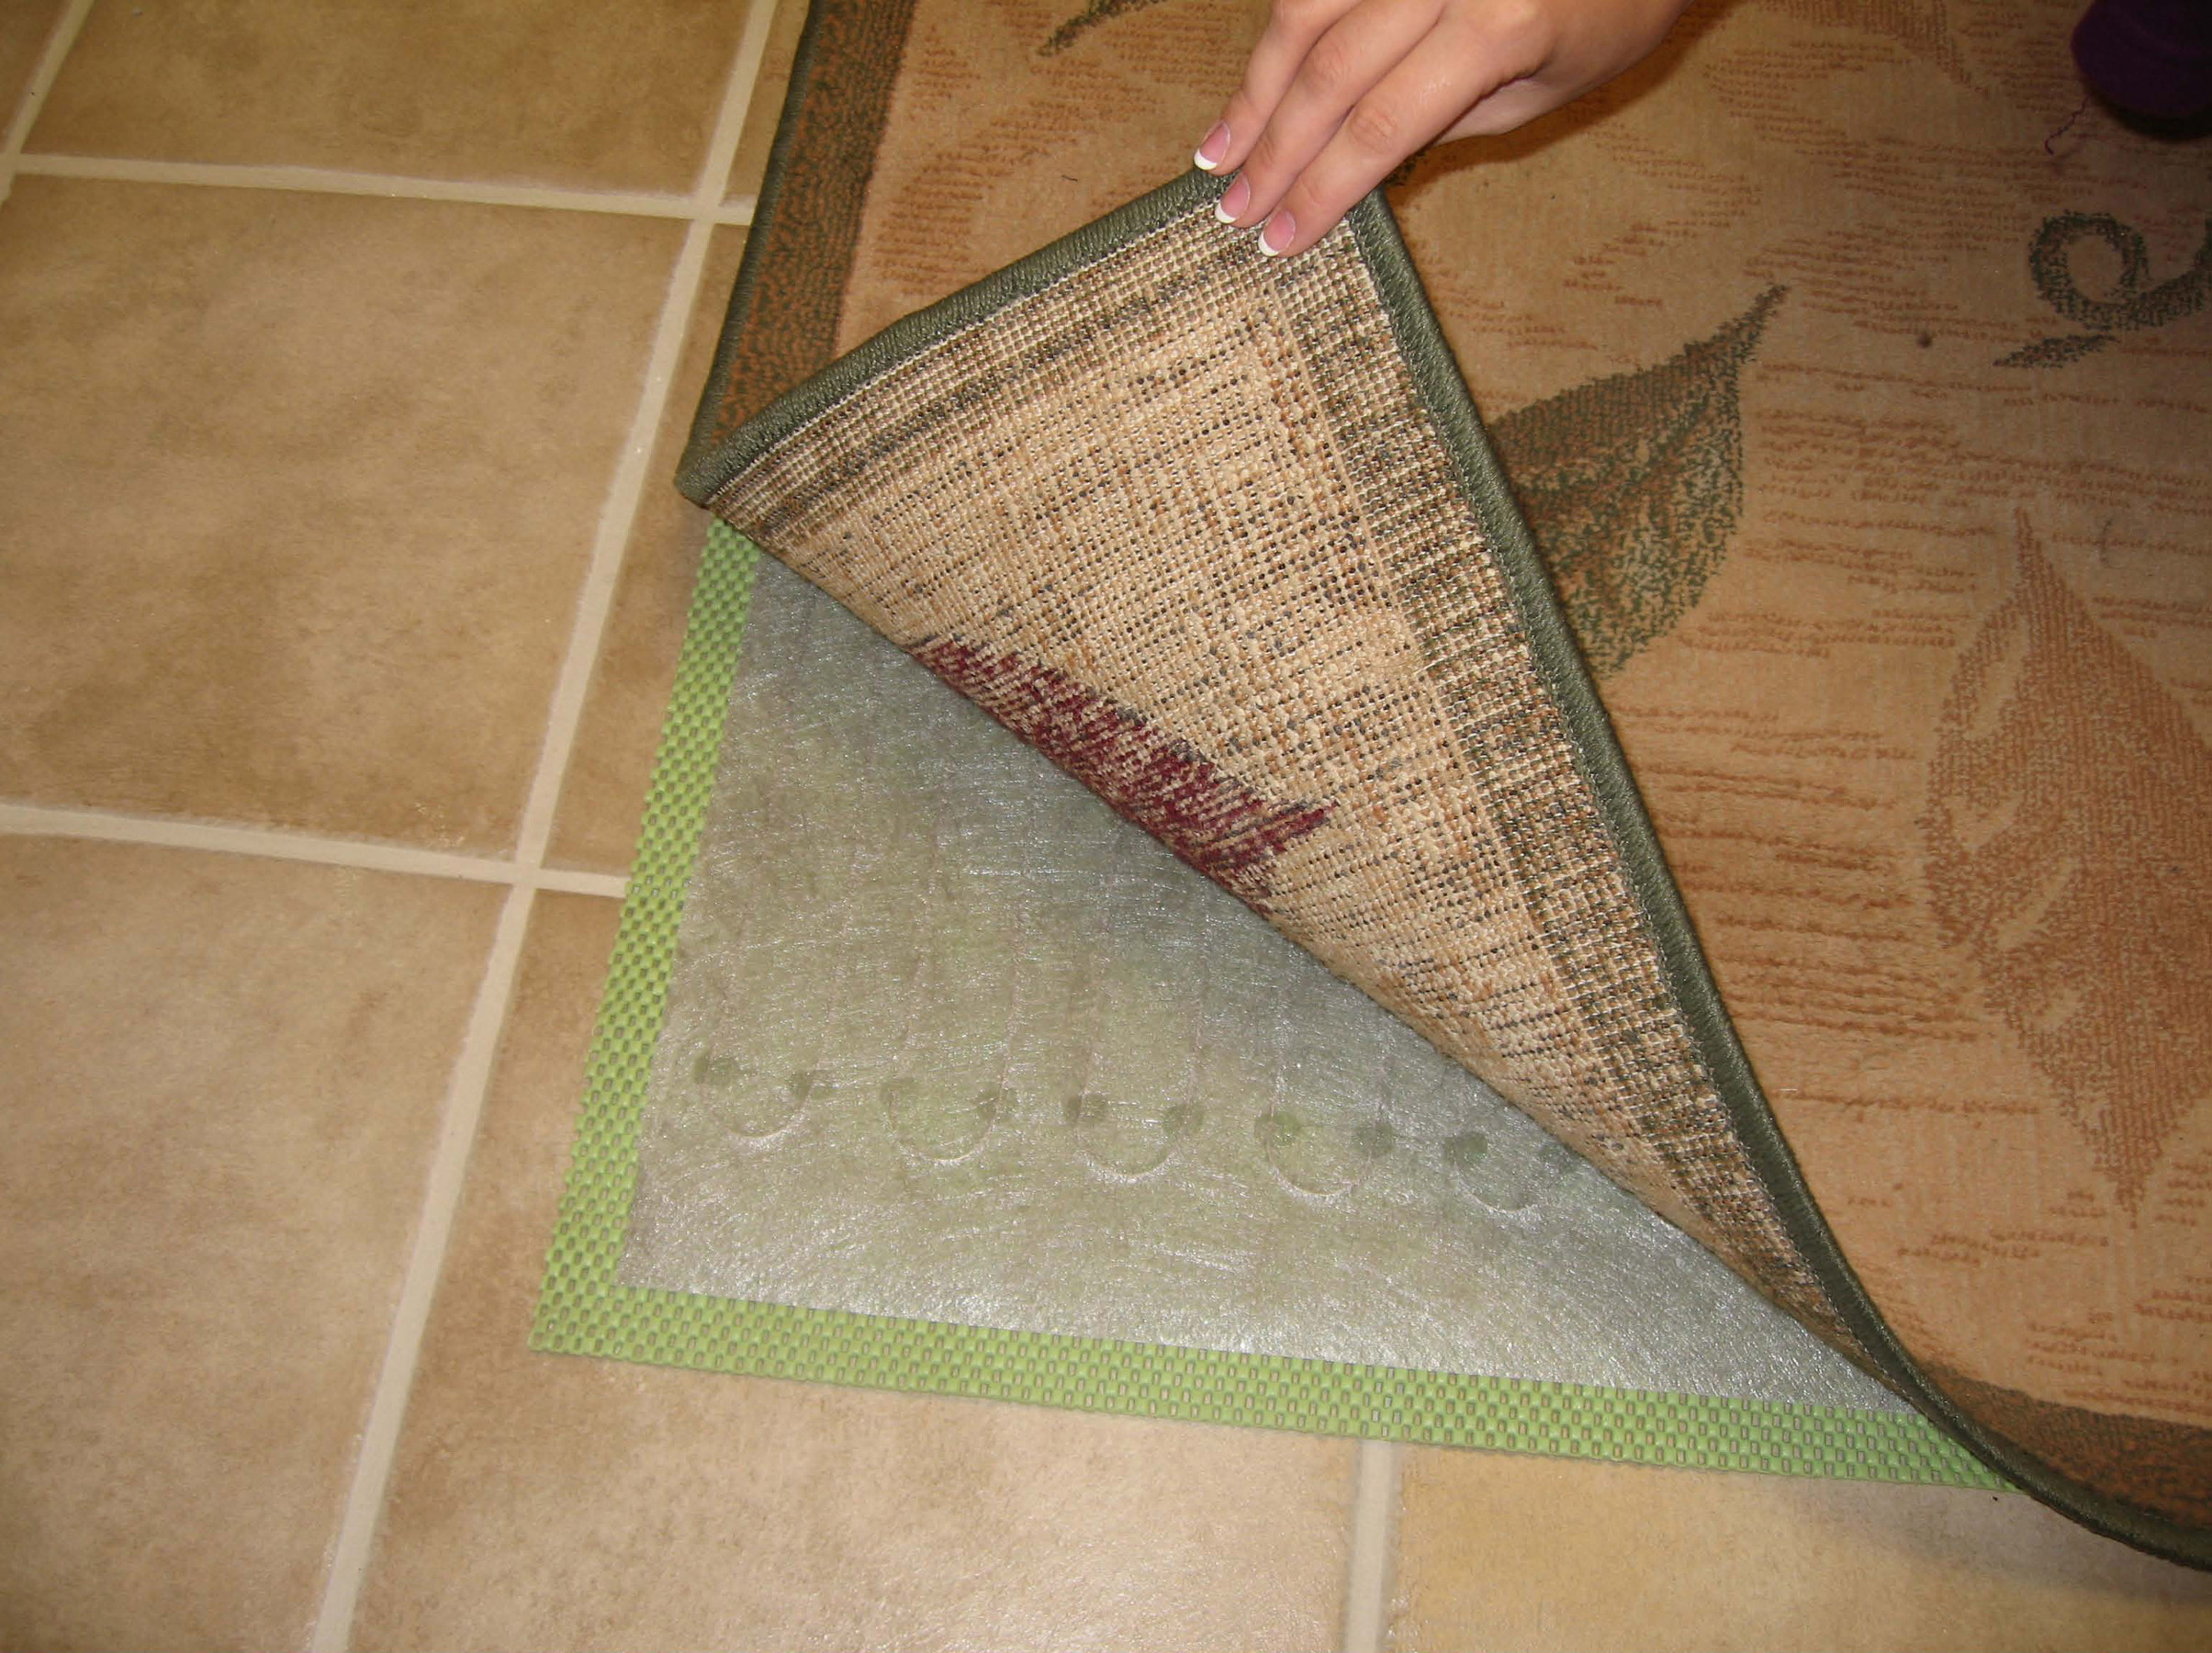 Newest Rugbuddy Heated Mats Turn Your Area Rugs Into Safe